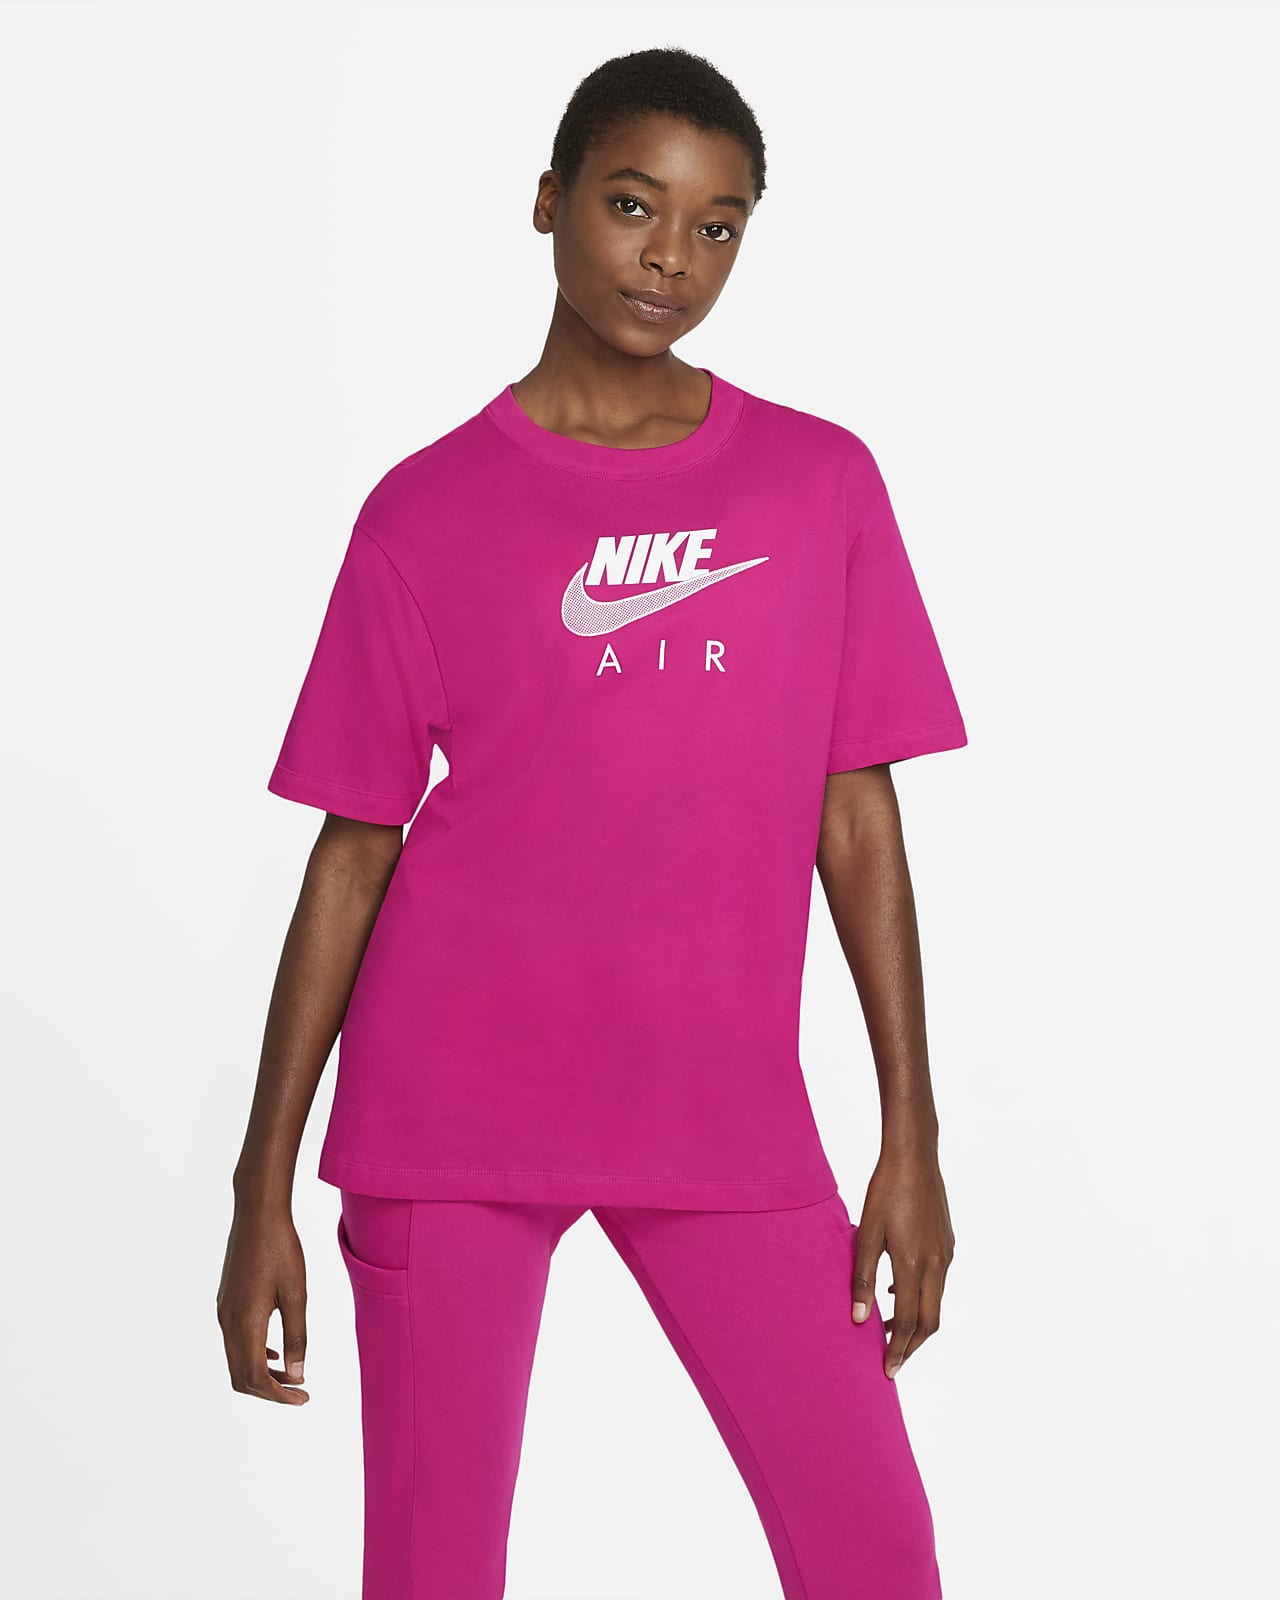 Nike Air Women's Boyfriend Top